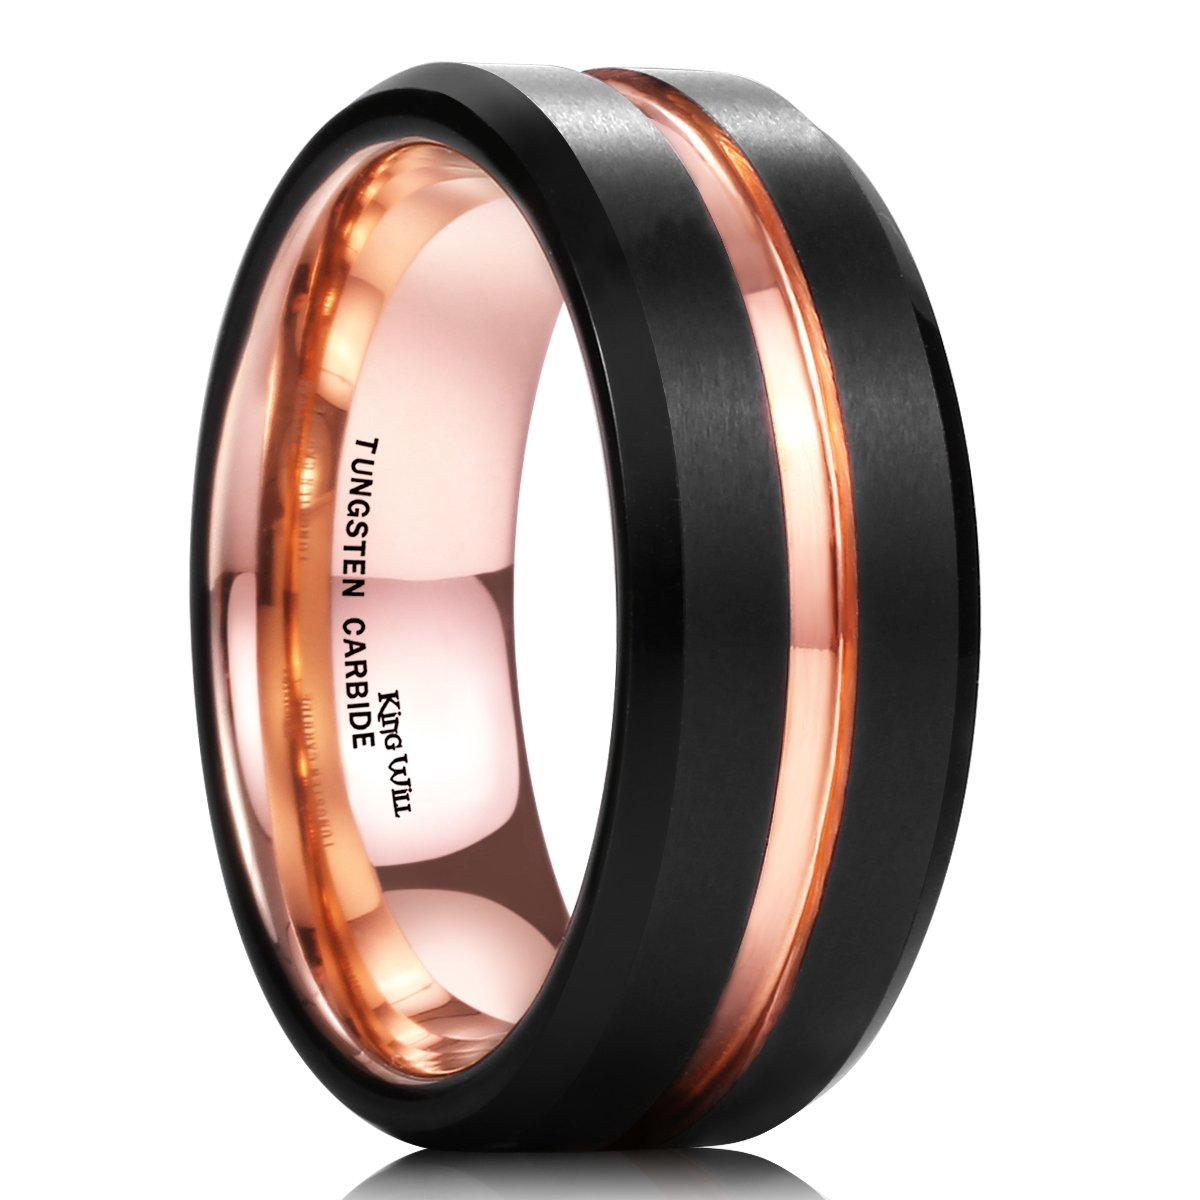 King Will Duo Mens 8mm Black Matte Finish Tungsten Carbide Ring 18K Rose Gold Plated Beveled Edge Wedding Band 10